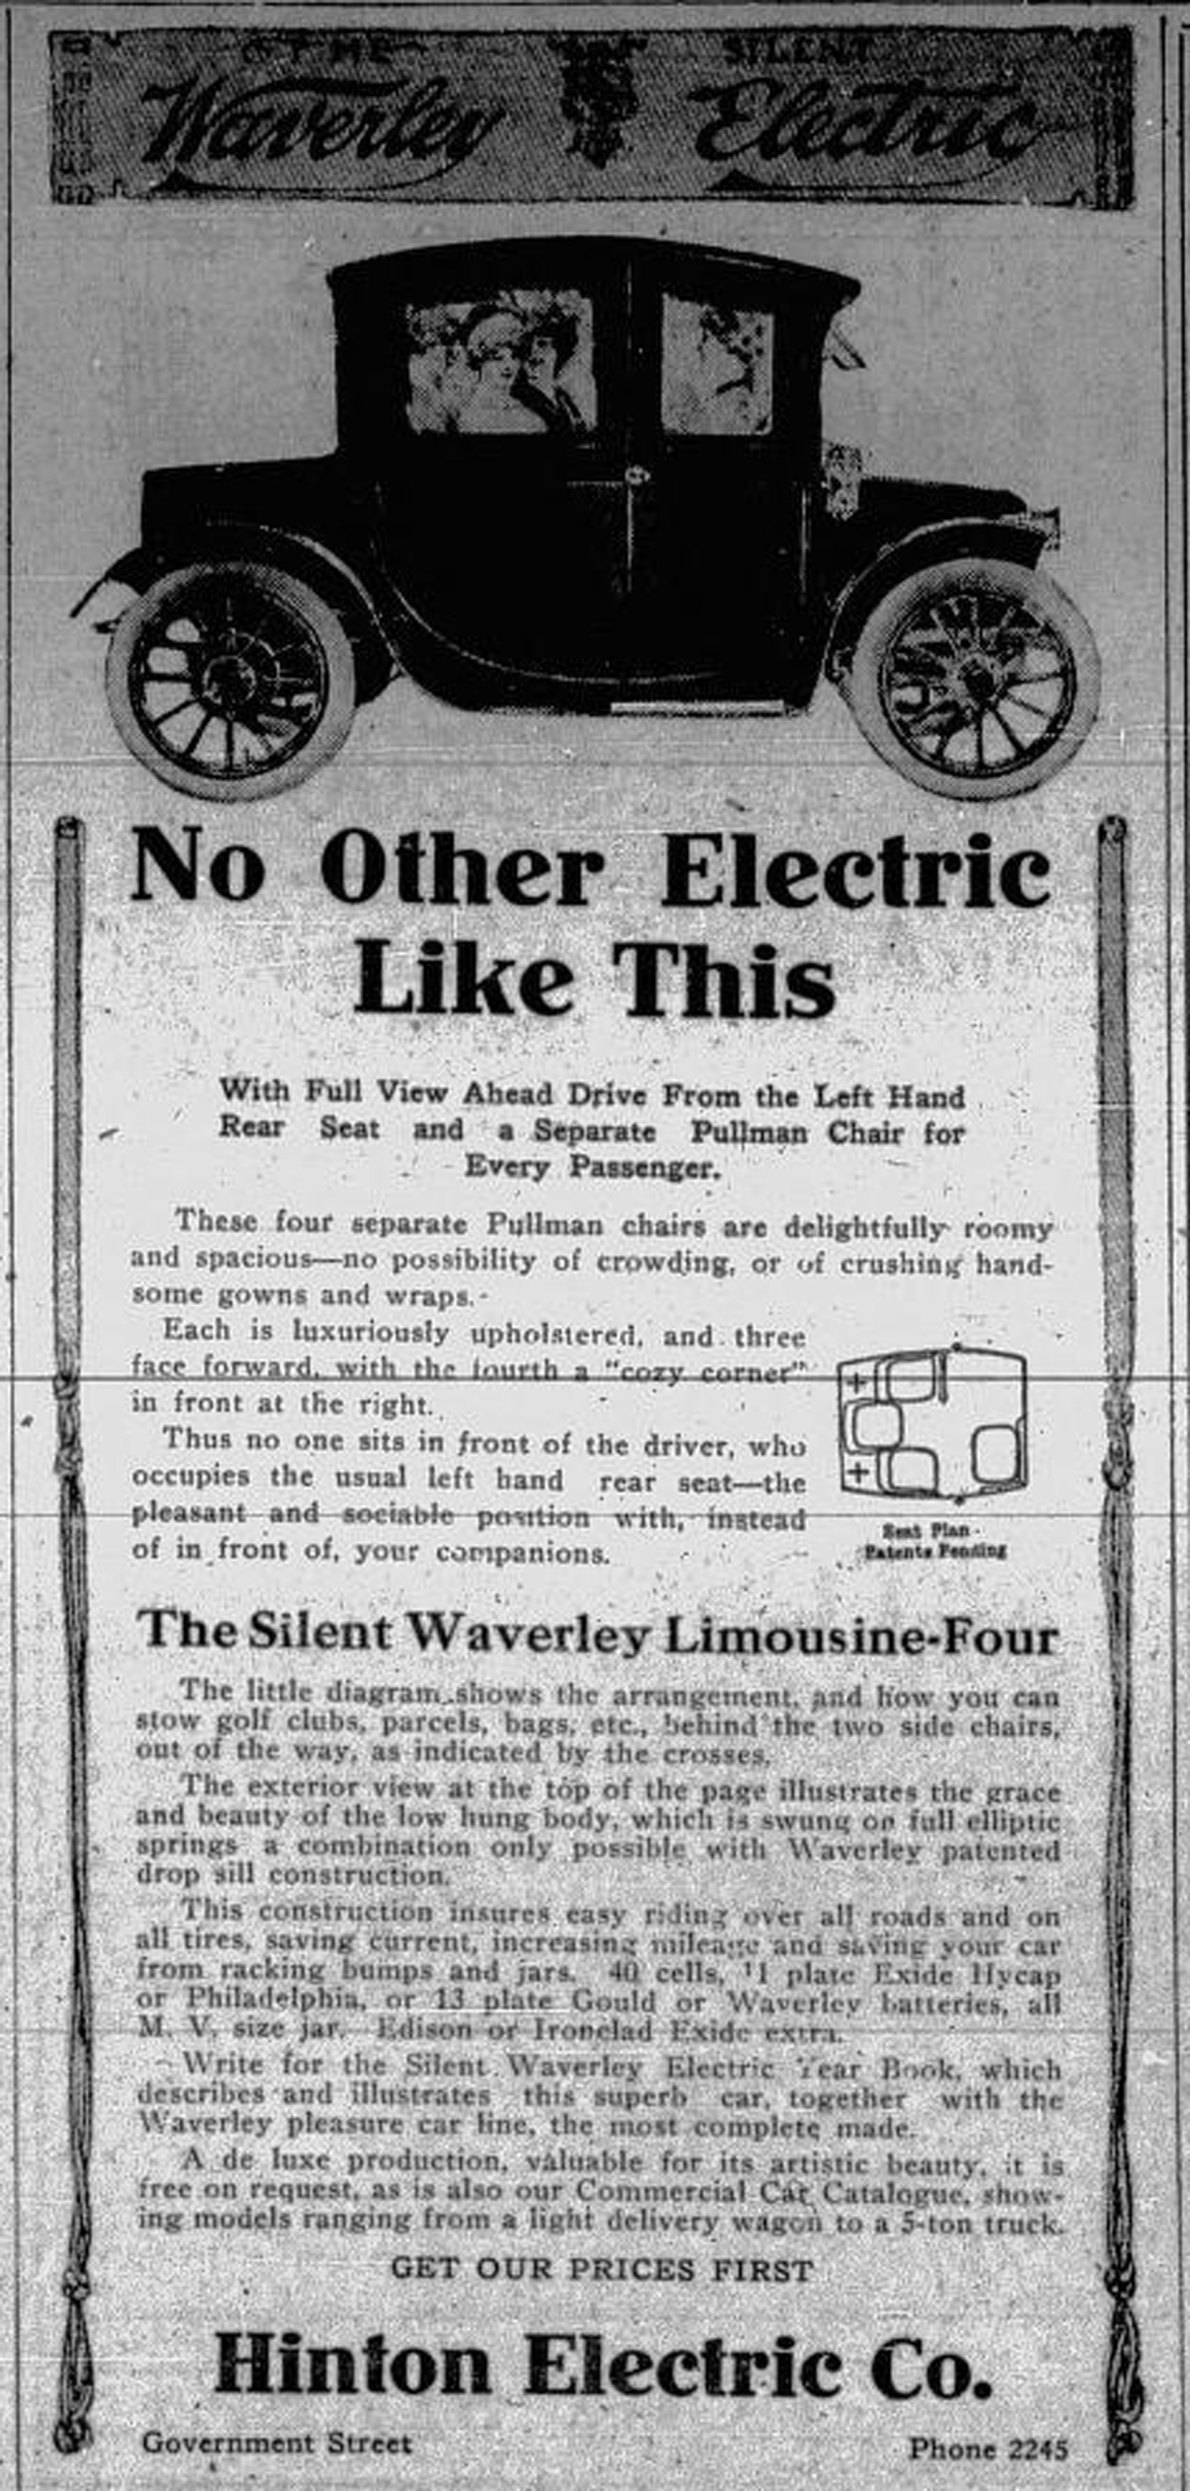 1913 advertisement by Hinton Electric Co., 911 Government Street, for Waverley electric cars (Victoria Online Sightseeing Tours collection)